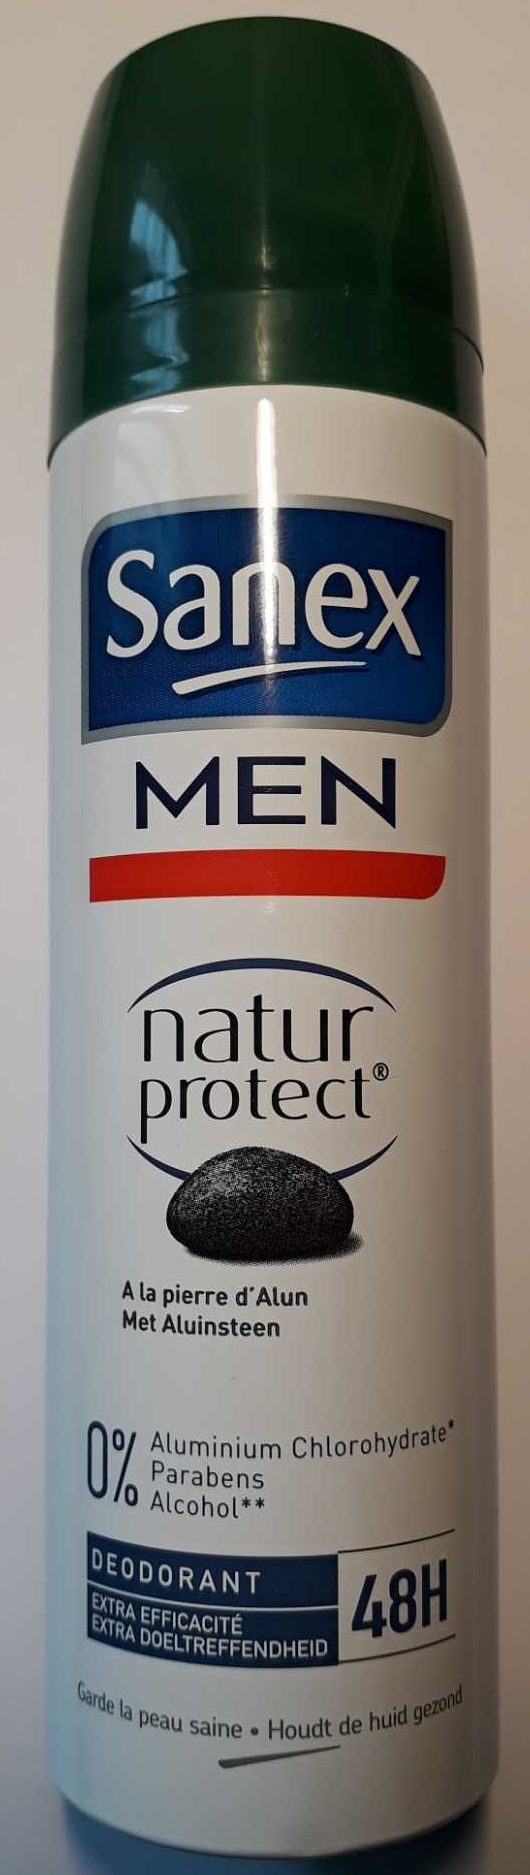 Sanex Men natur protect® - Product - fr